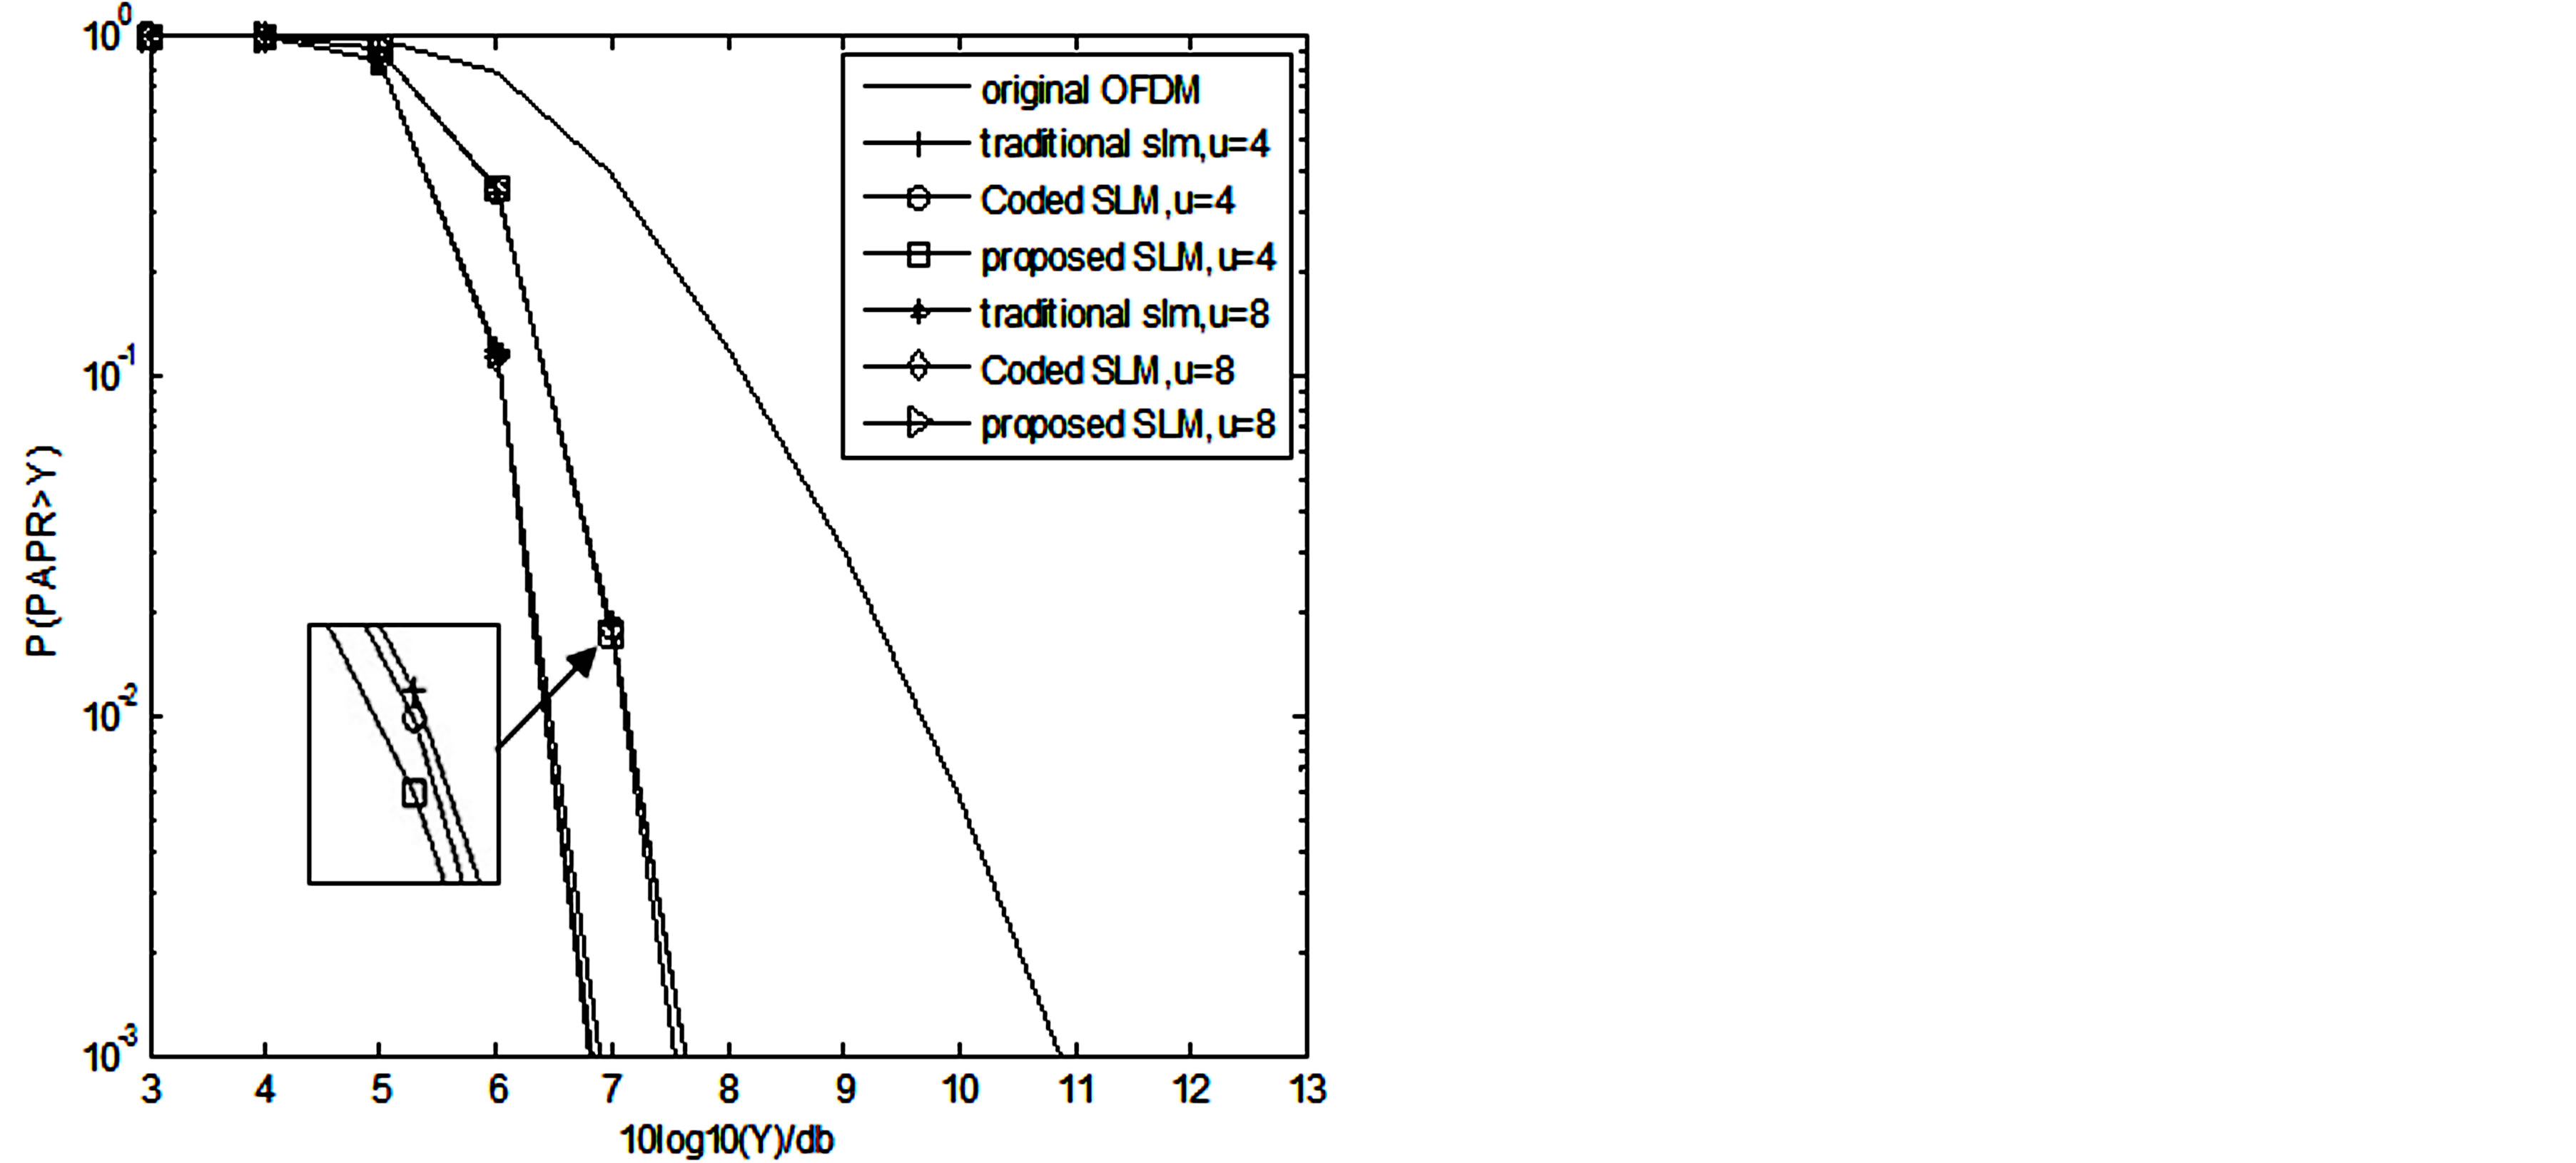 OFDM Wireless Downhole Transmission Systems and Proposed SLM